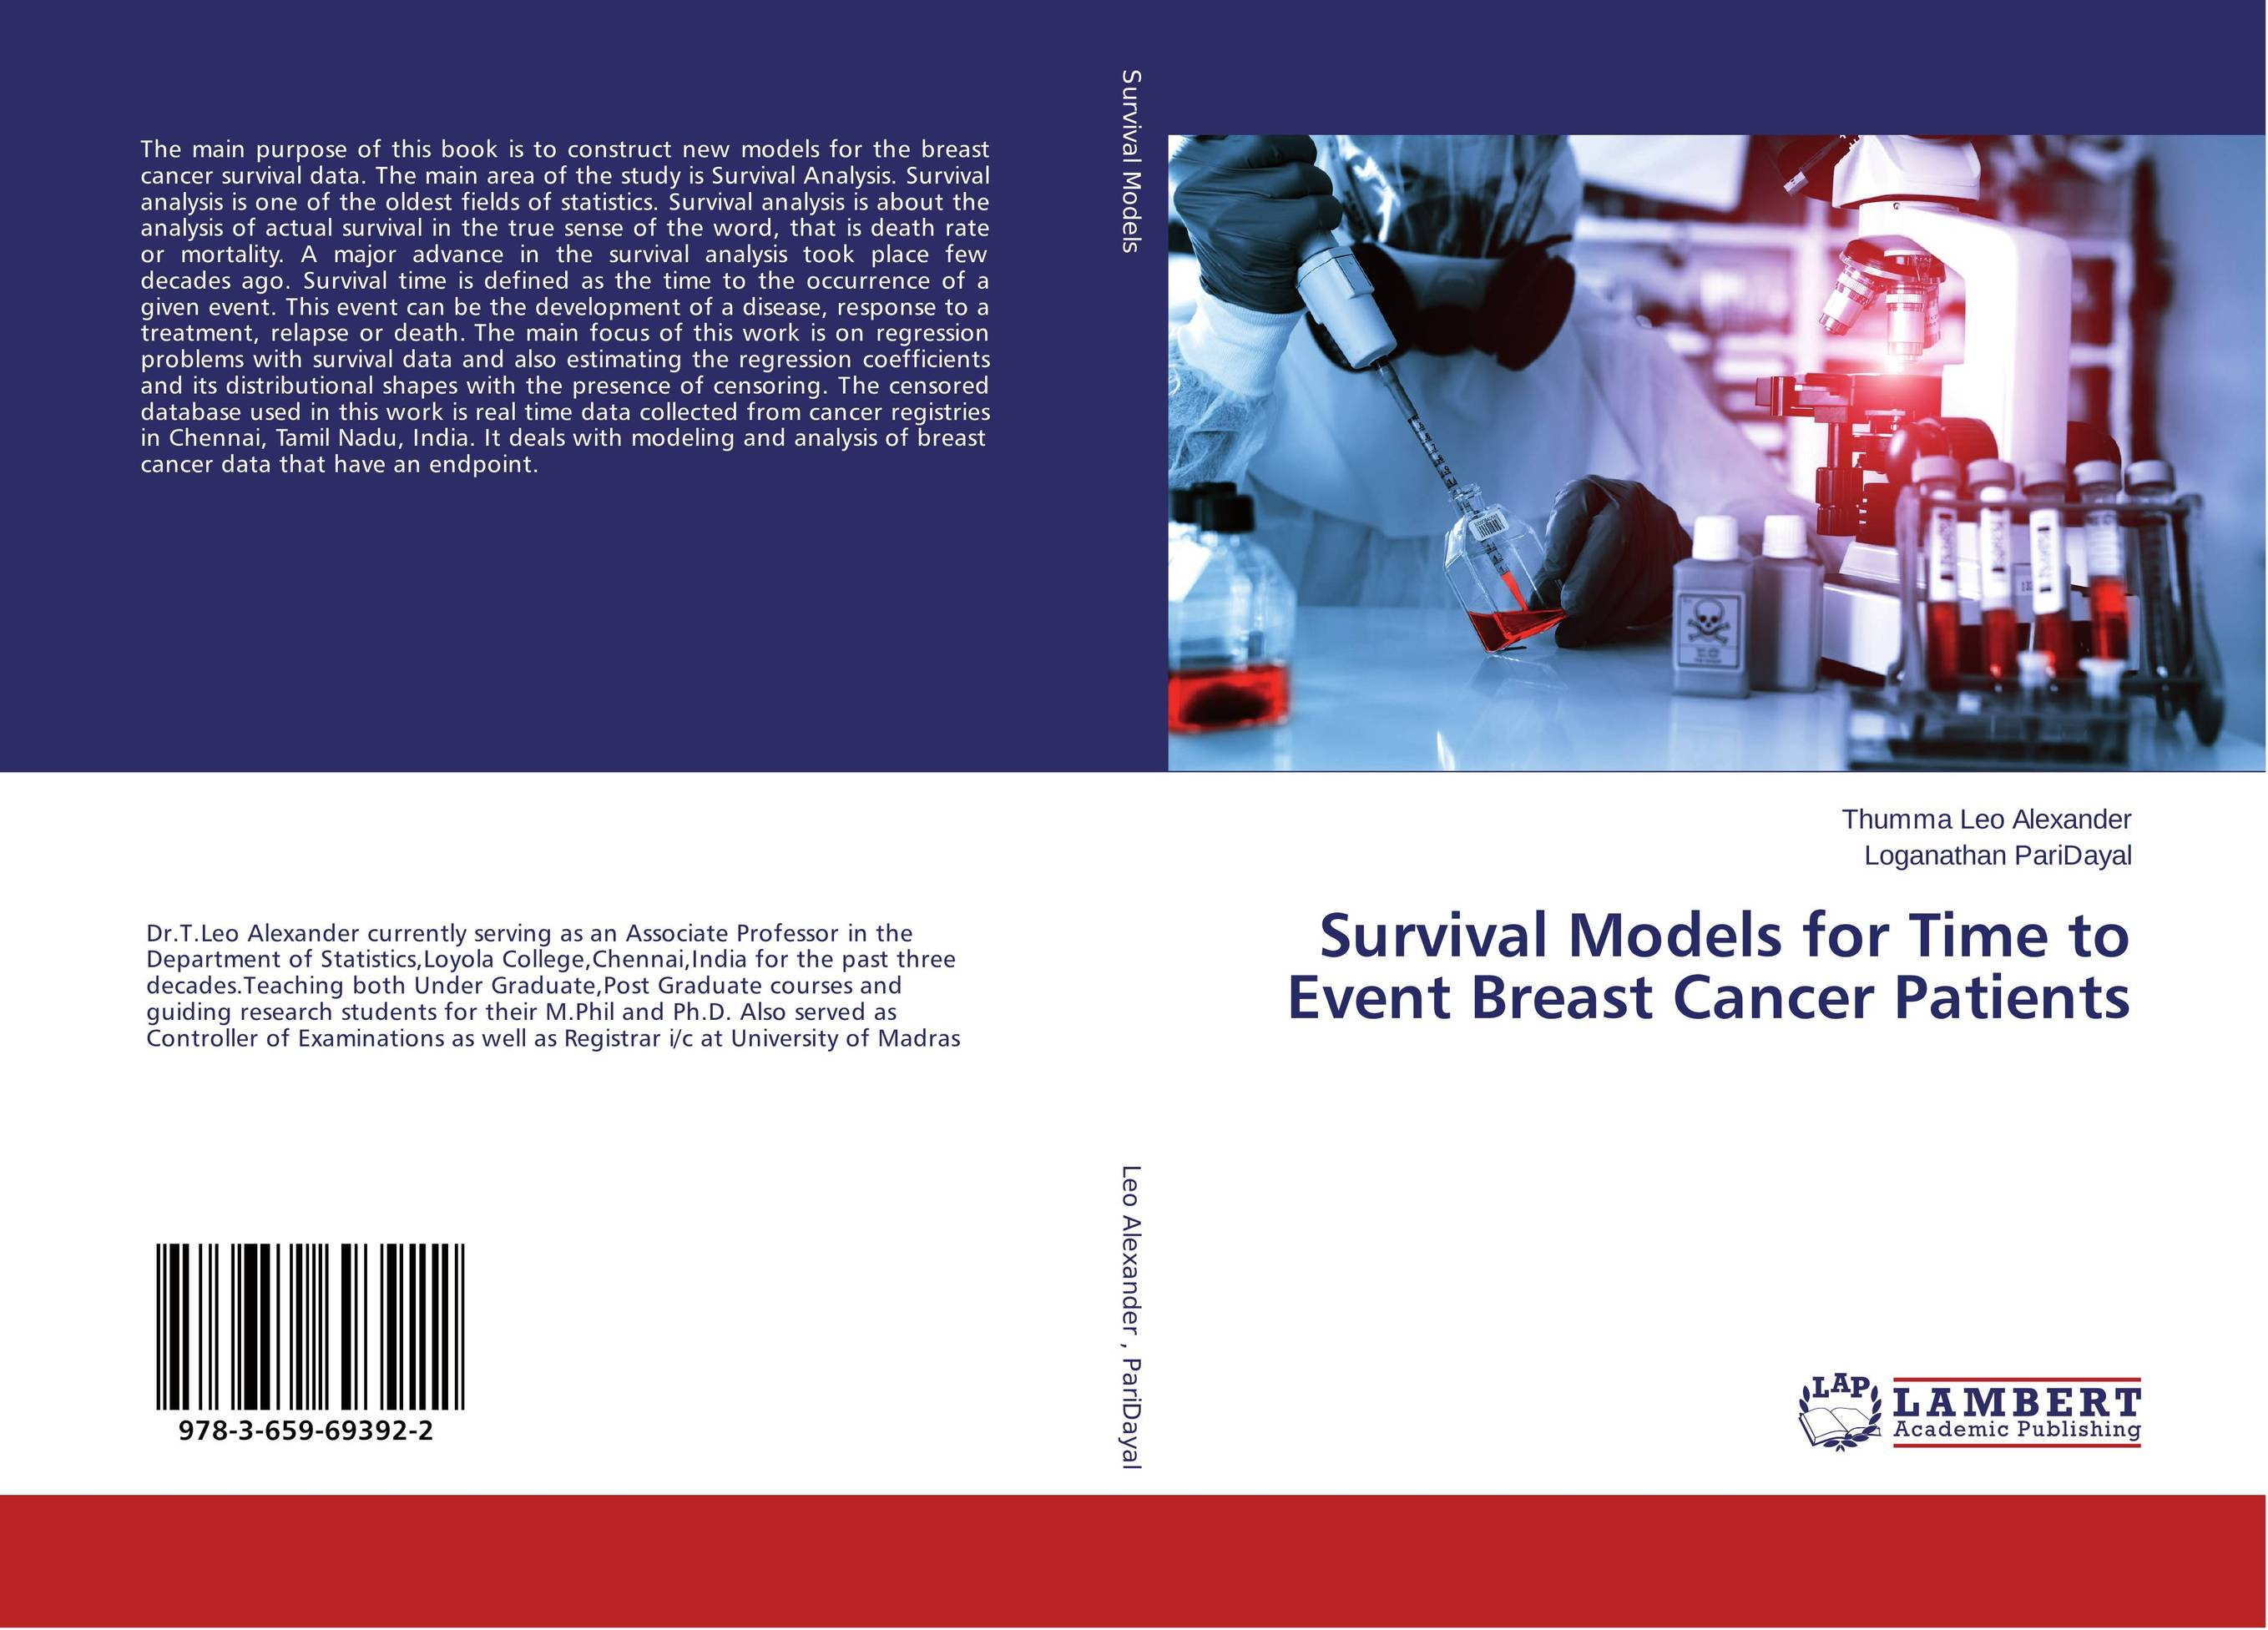 Survival Models for Time to Event Breast Cancer Patients breast cancer awareness device for the women home self examination